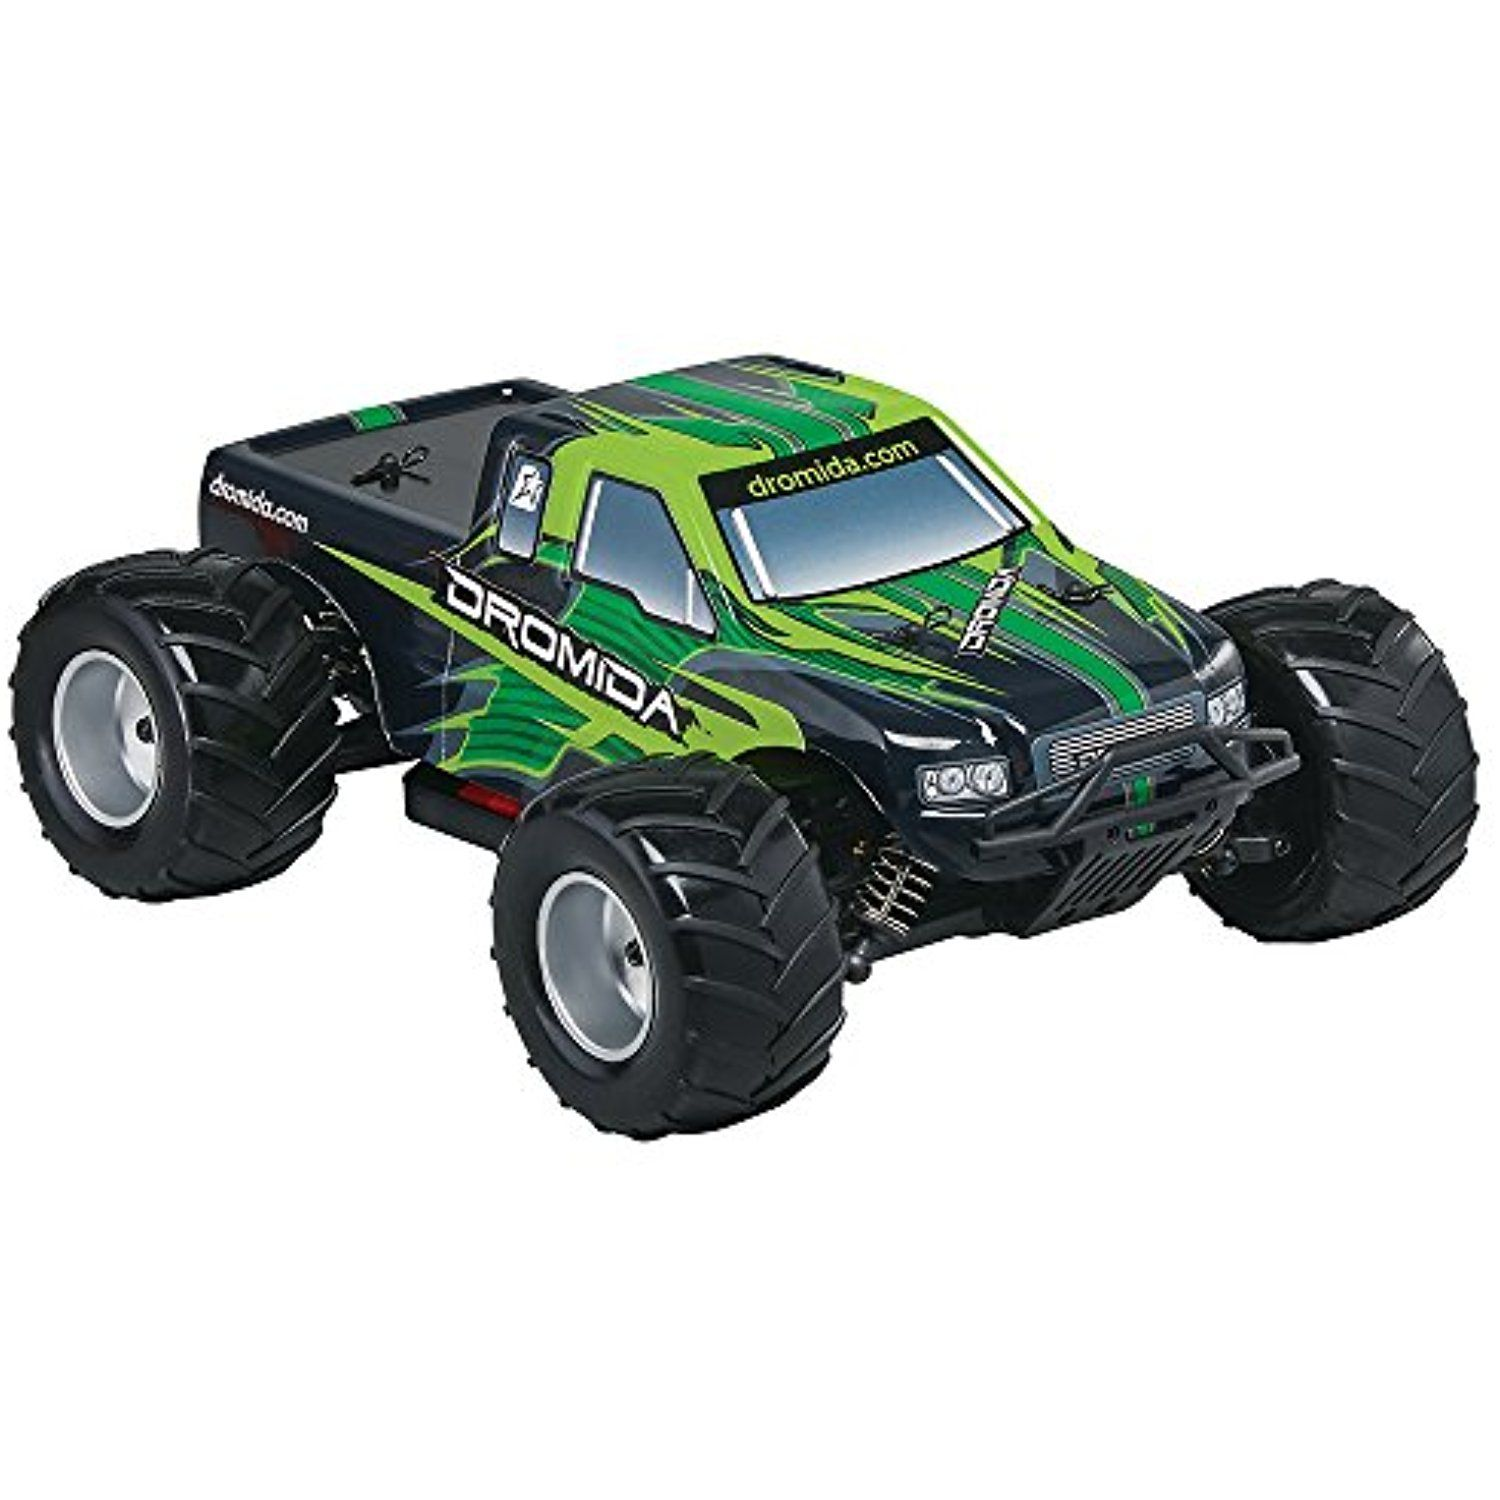 Rtr Rc Trucks Electric Dromida 1 18 Scale Rtr Remote Control Rc Car Electric 4wd Mt